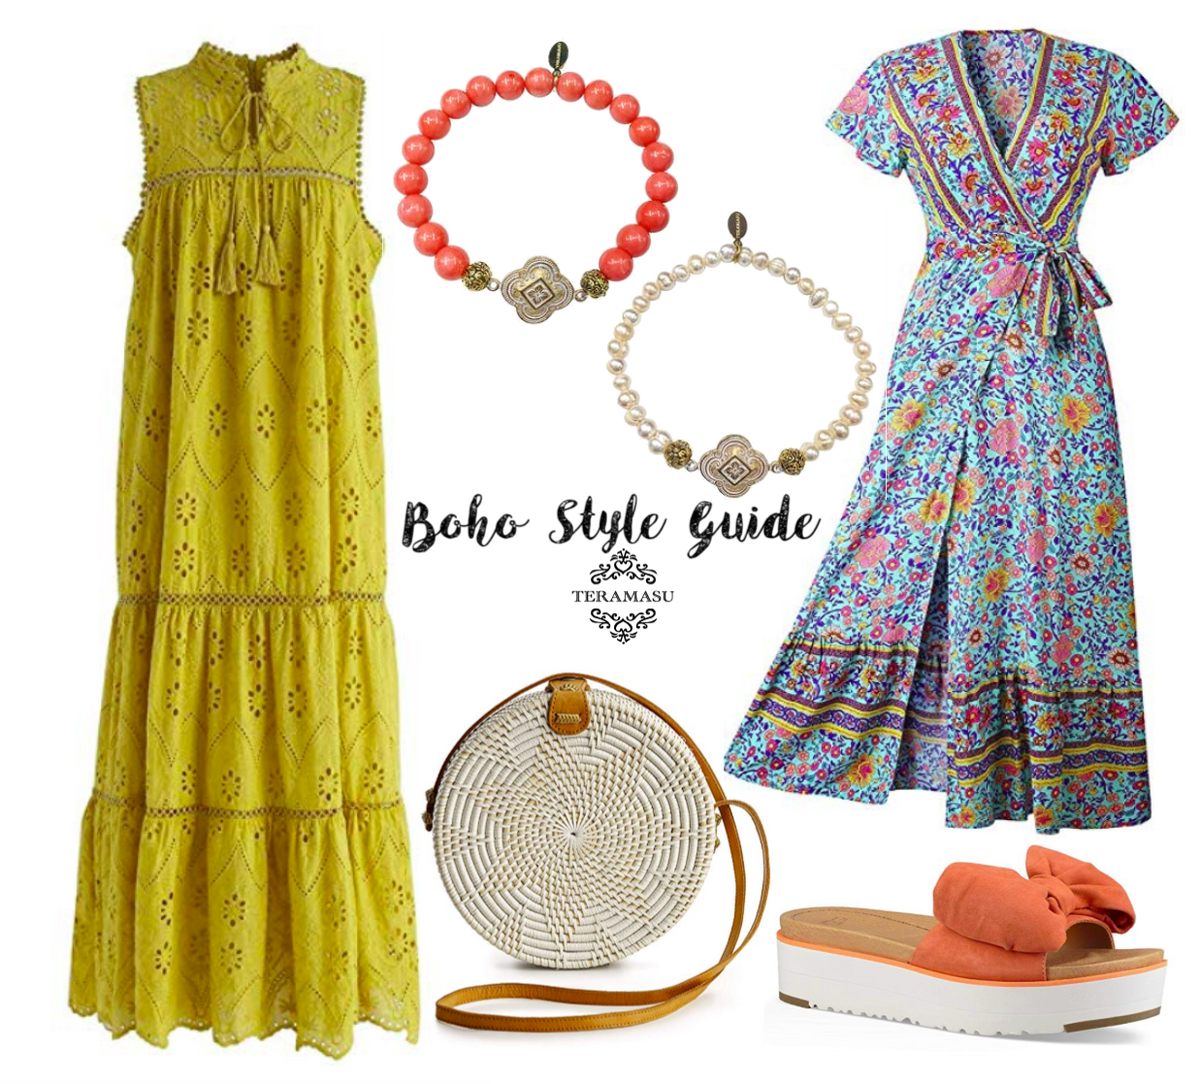 Chic Peek: Boho Summer Style Guide from Teramasu